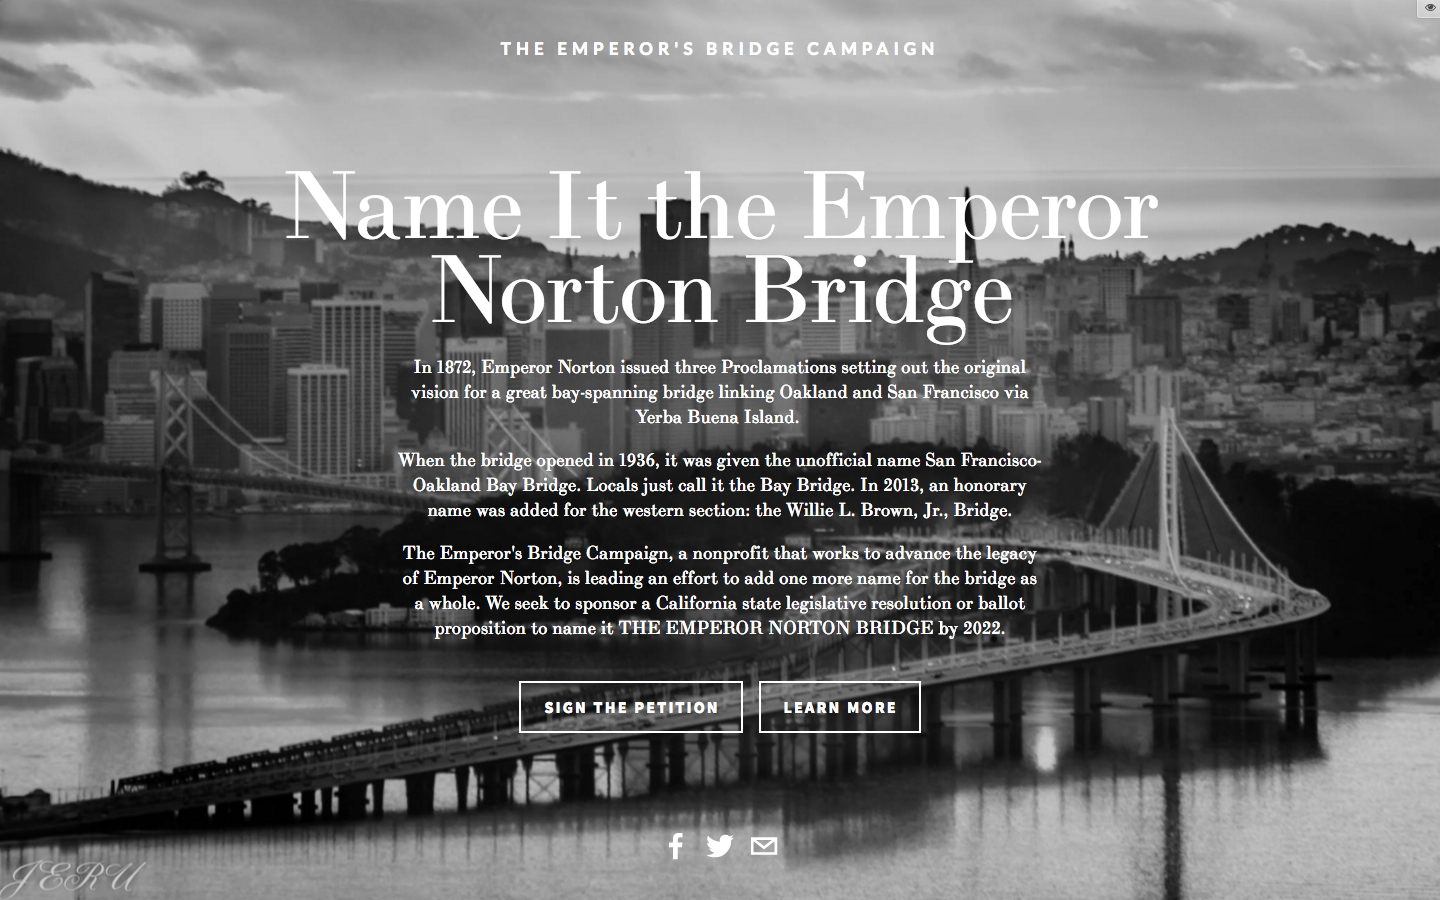 New cover page for The Emperor's Bridge Campaign's project to name the San Francisco-Oakland Bay Bridge for Emperor Norton. Click above to go to the page. Background photograph © 2015 Jeru Banez.